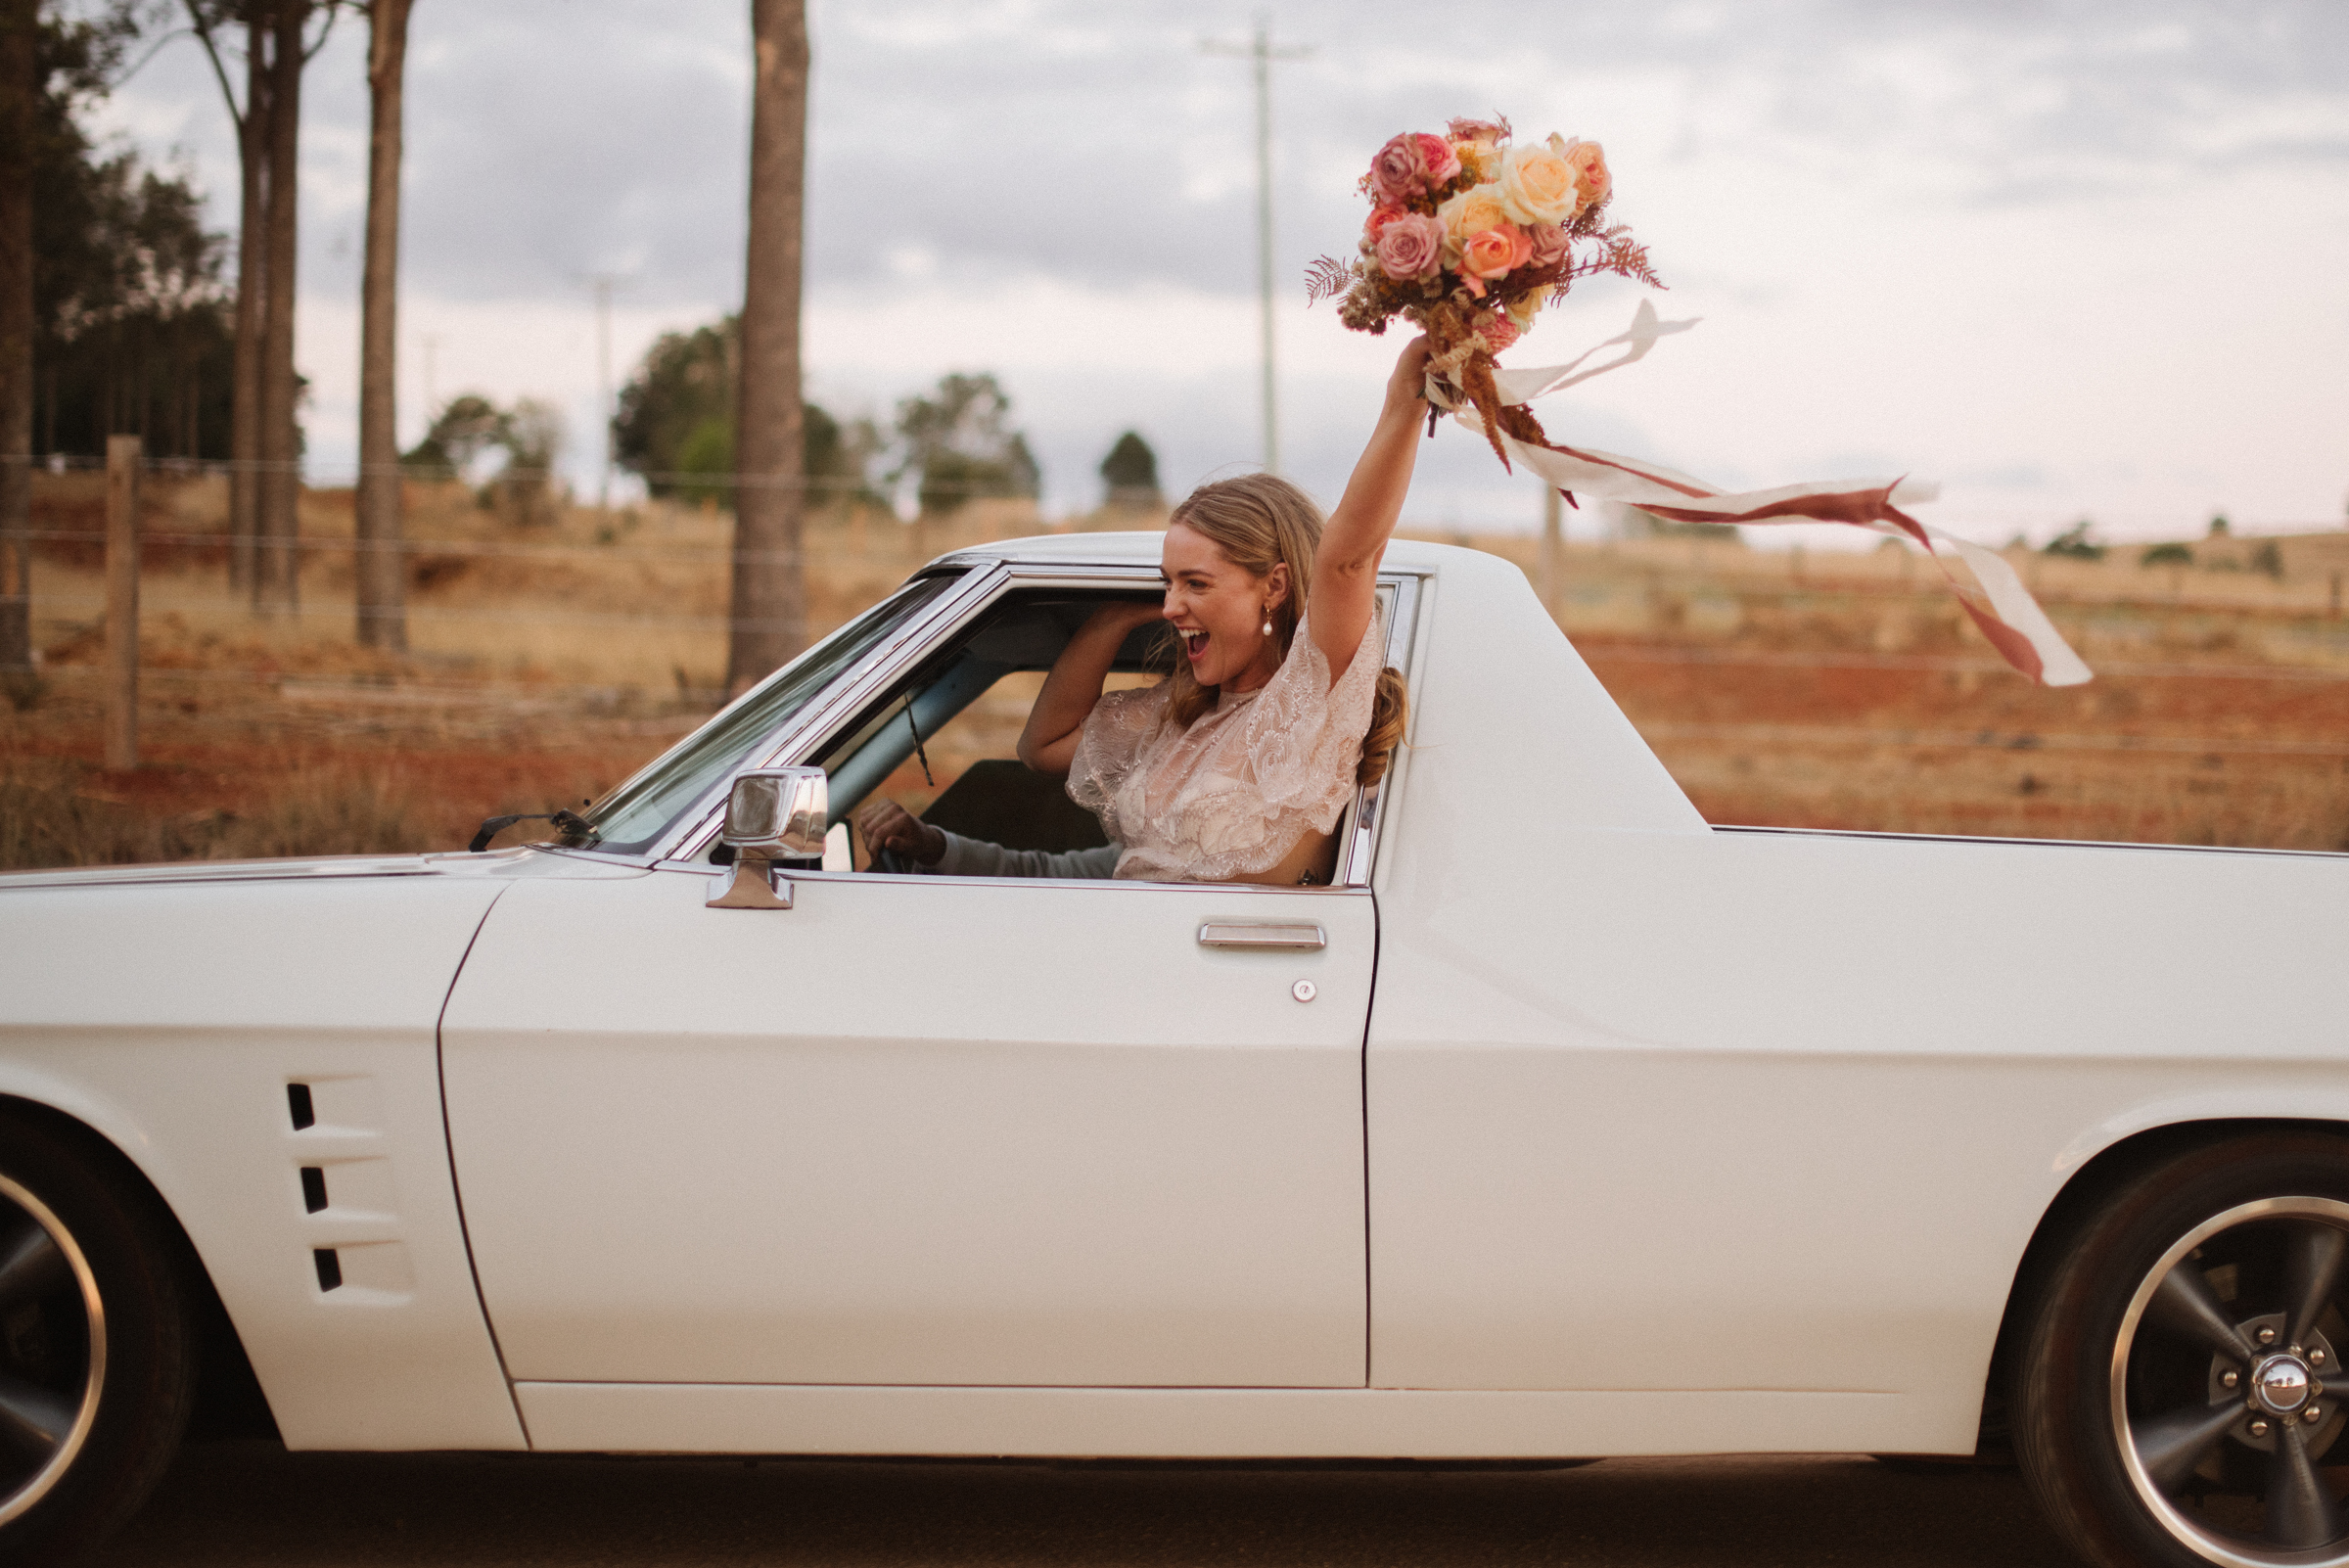 bride-excited-while-driving-away-from-ceremony-with-bouquet-out-window-ben-sowry-photo-australia